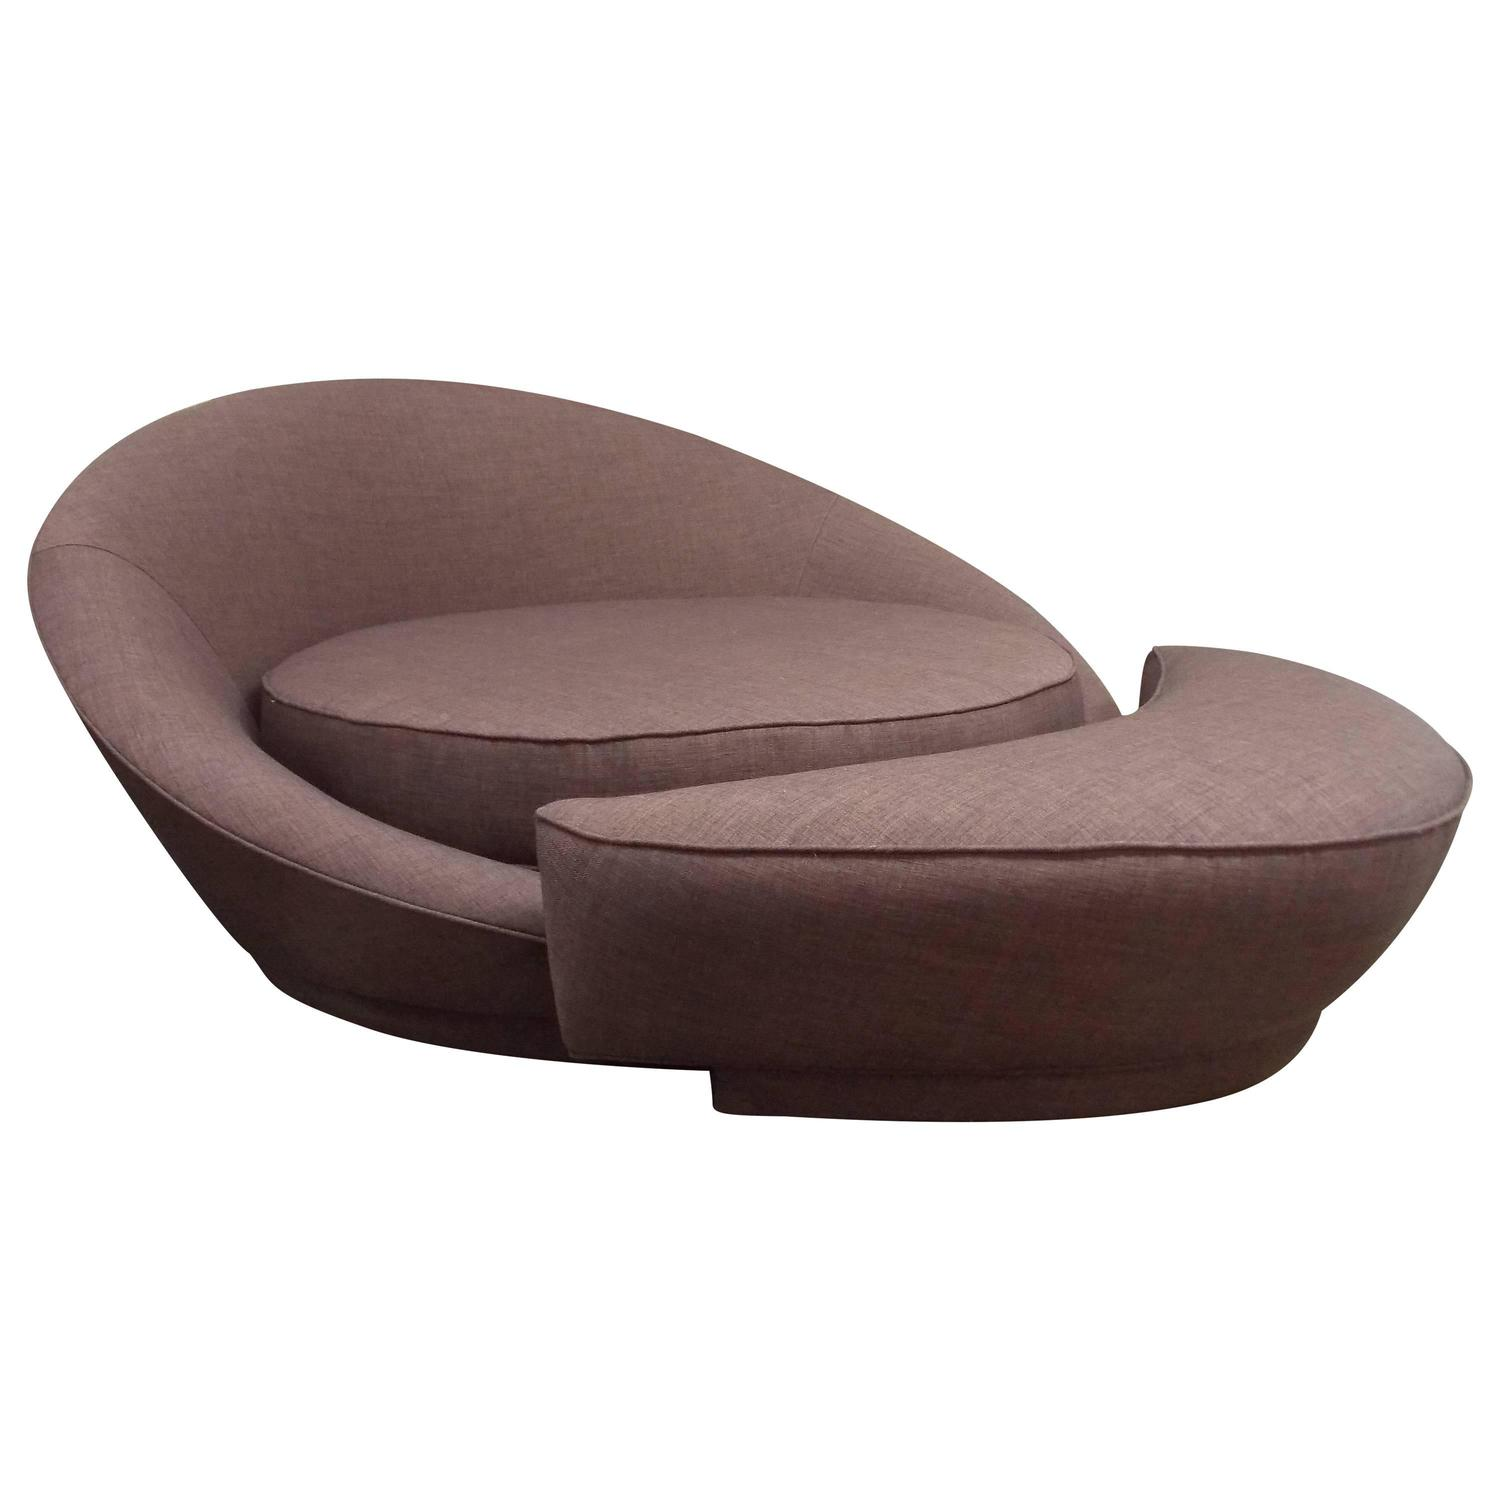 Milo Baughman Round Loveseat Or Lounge Chair With Ottoman At 1stdibs